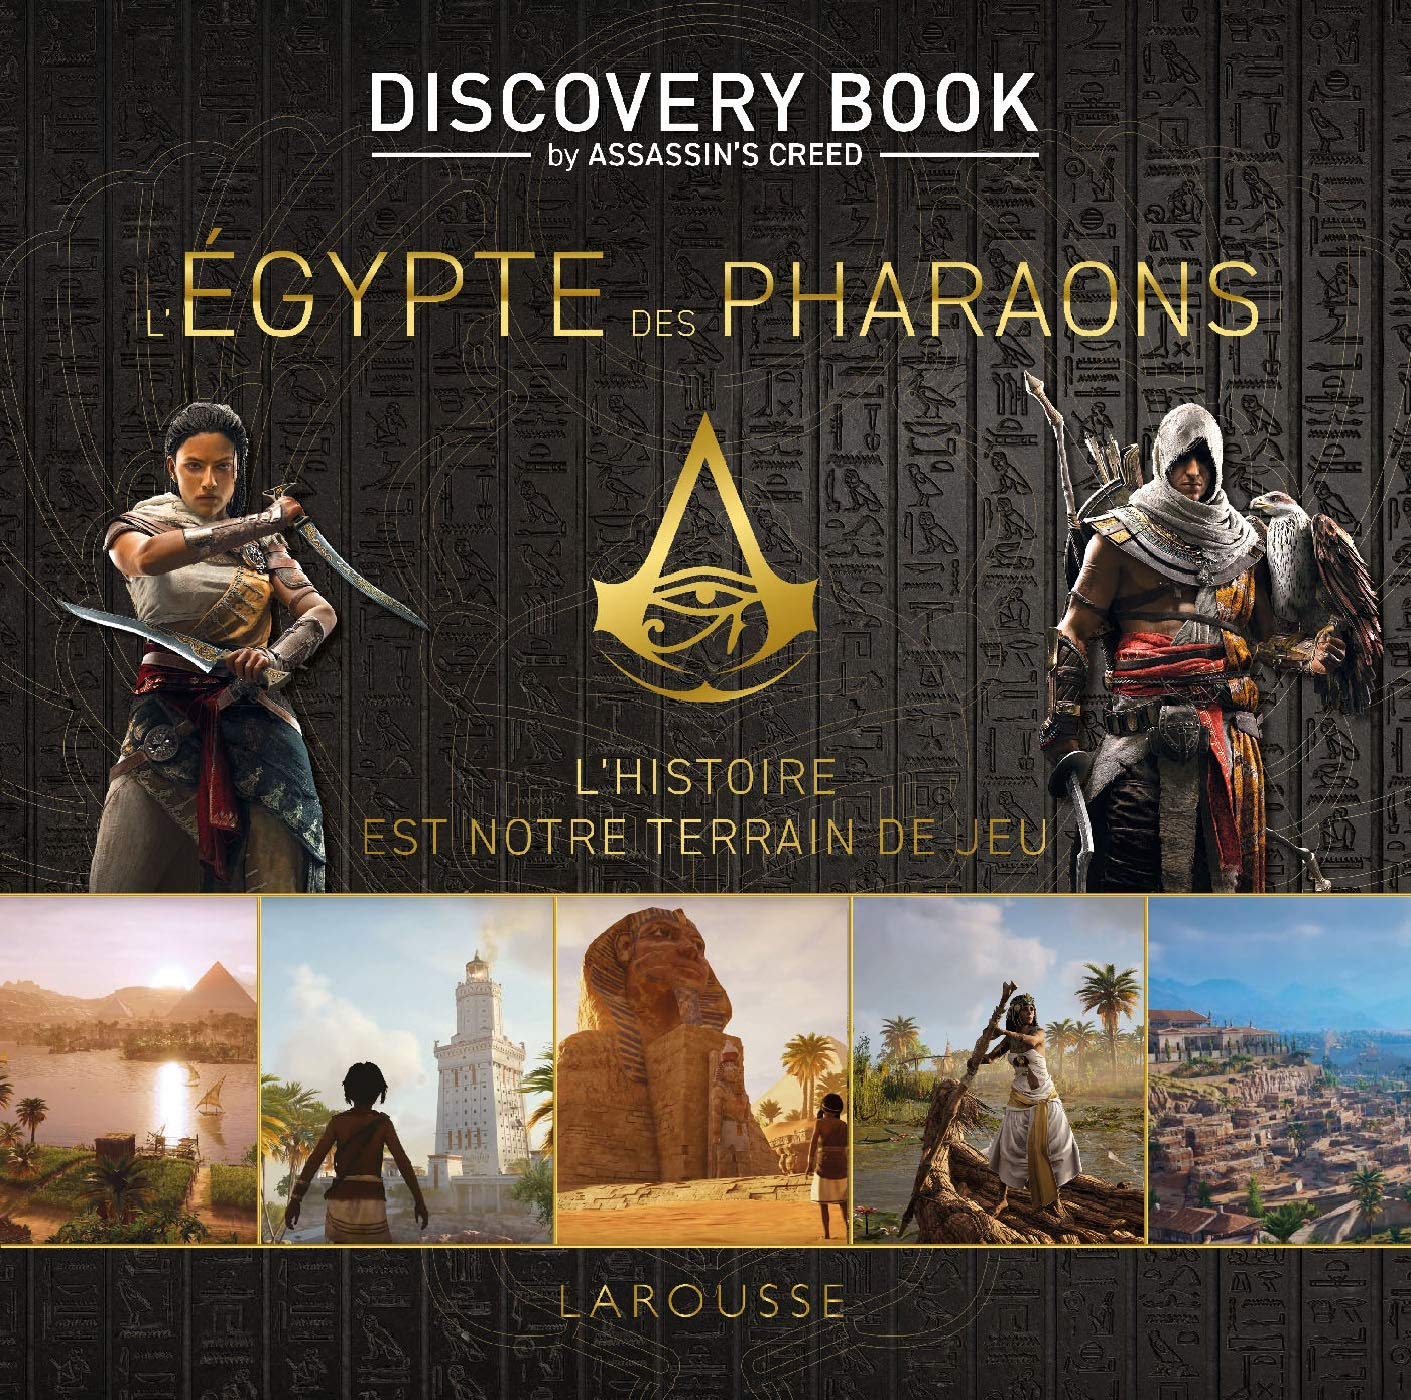 Assassins Creed Discovery Tour Egypte Pharaons